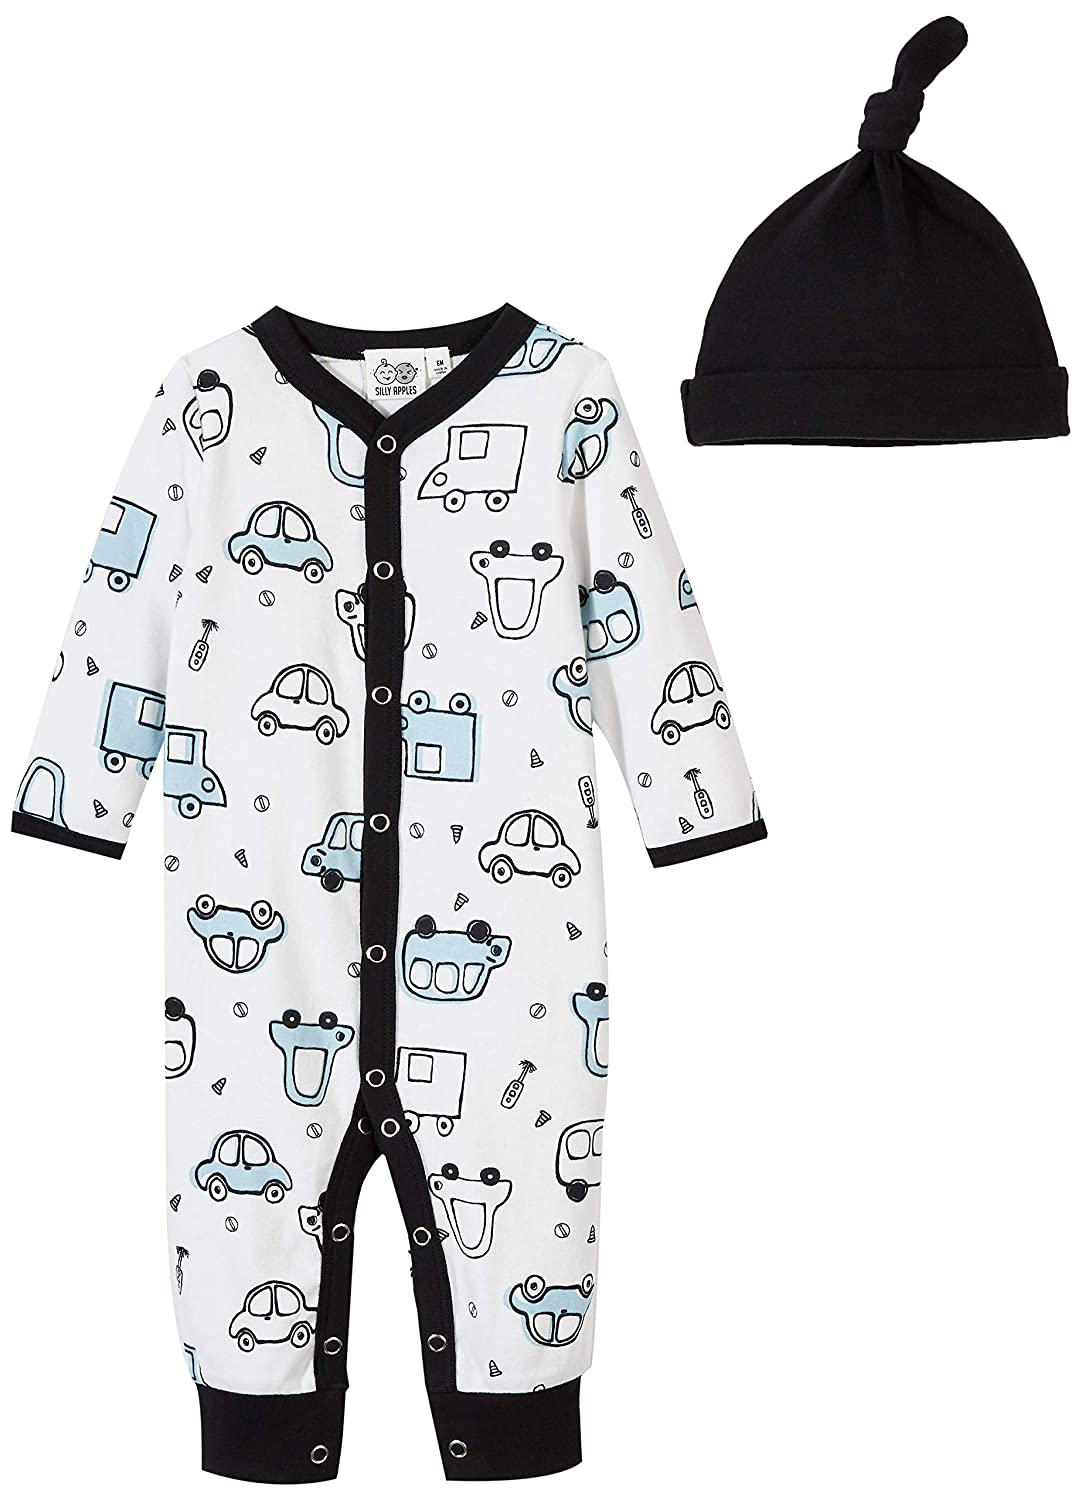 Silly Apples Baby Toddler Boys or Girls Fall Outfit 2-Piece Long-Sleeve Romper Jumpsuit Onesies and Hat Set